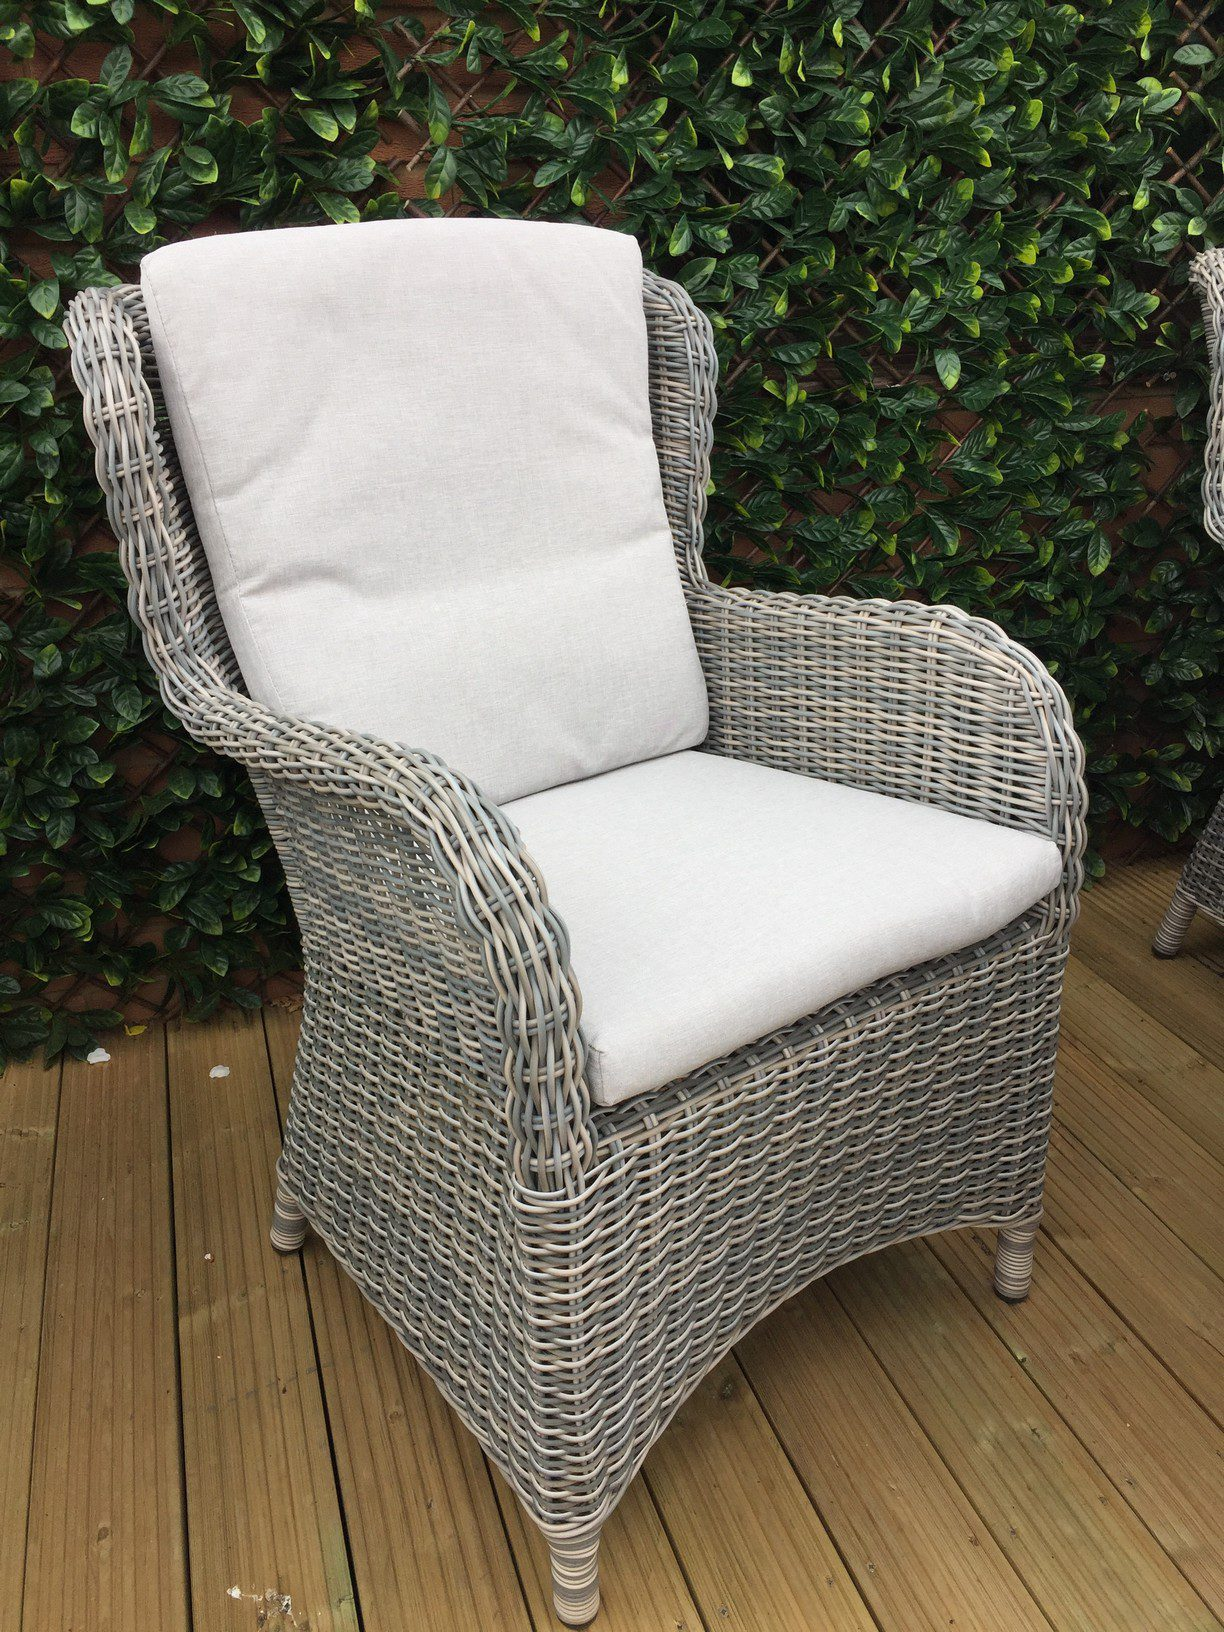 Taste By 4 Seasons Penida 6 Seat Set Roca Weave 13